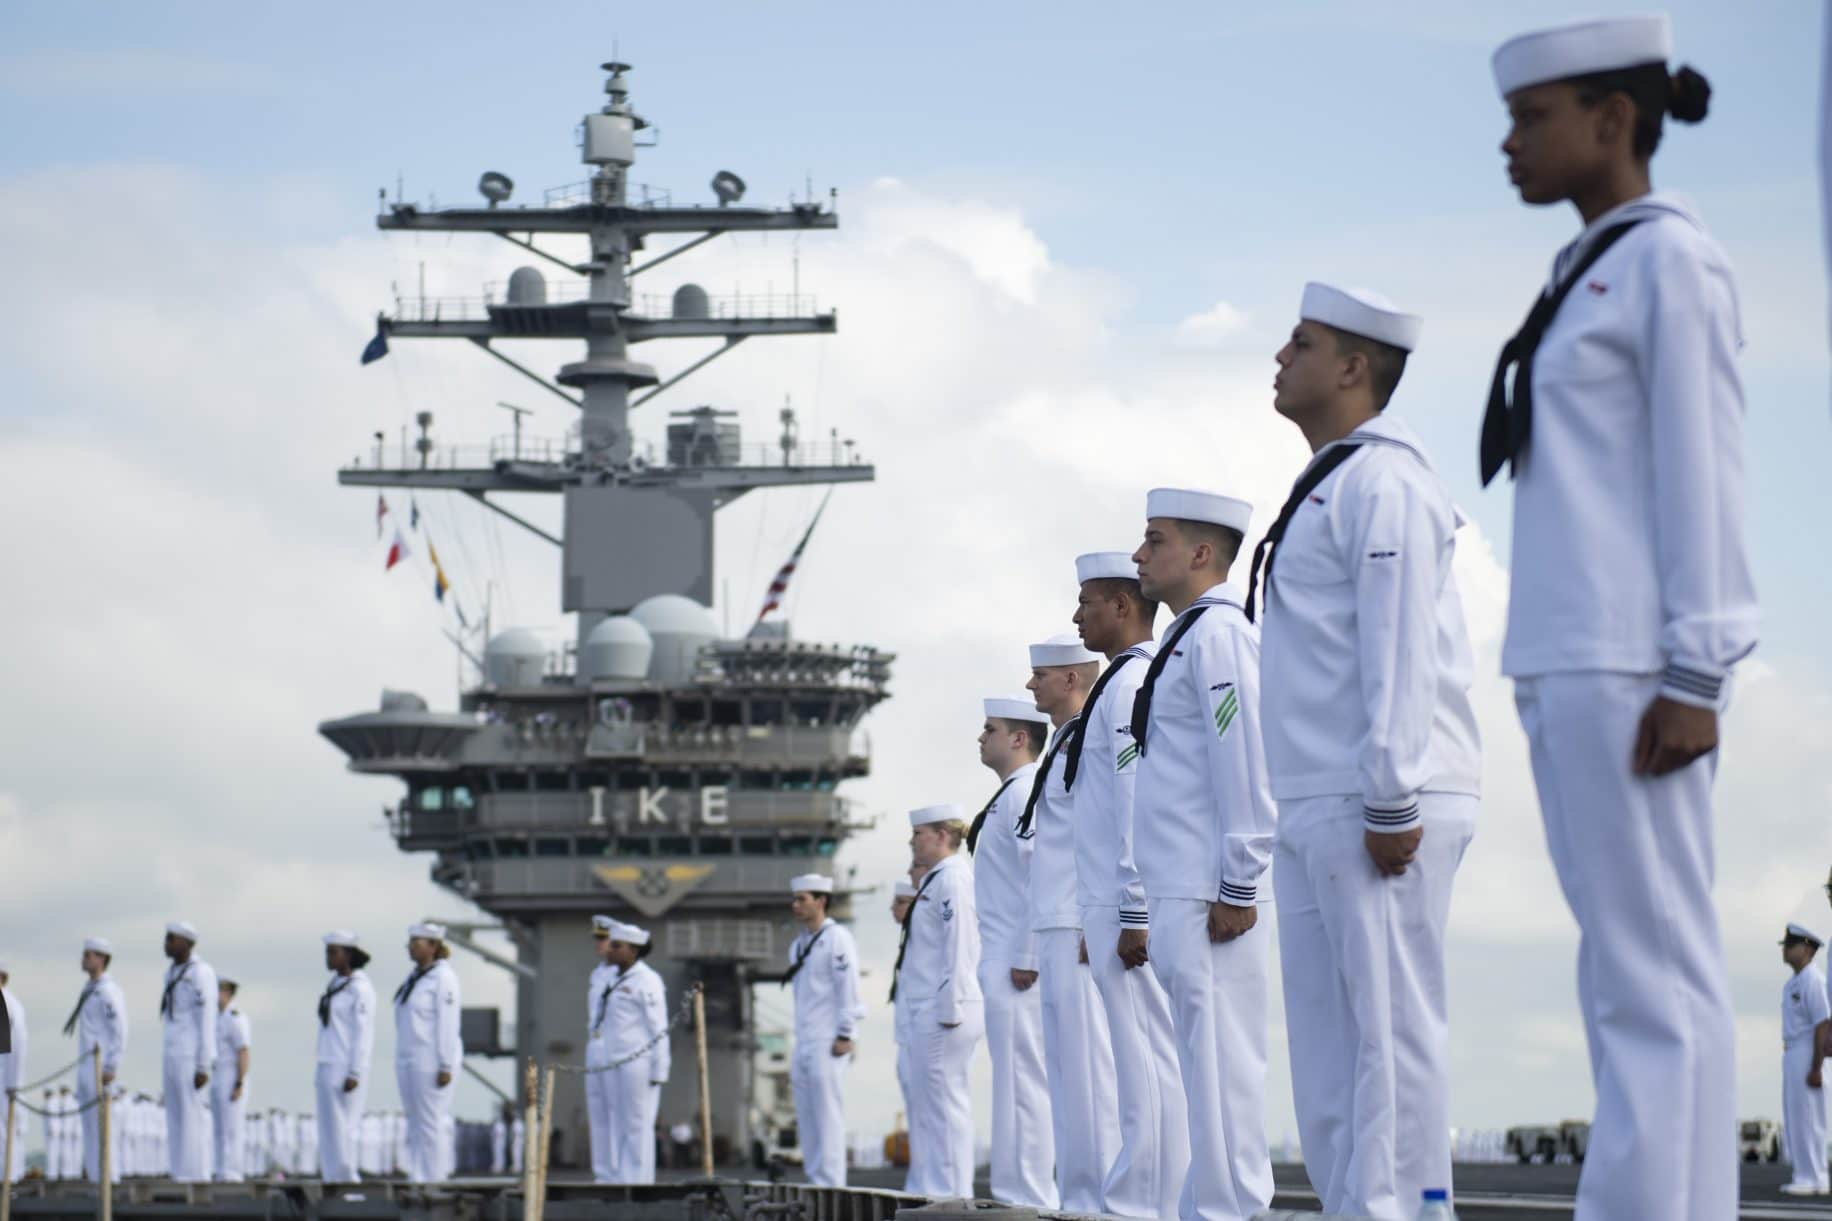 Navy ordering all sailors to re-swear oath to constitution in extremism stand-down